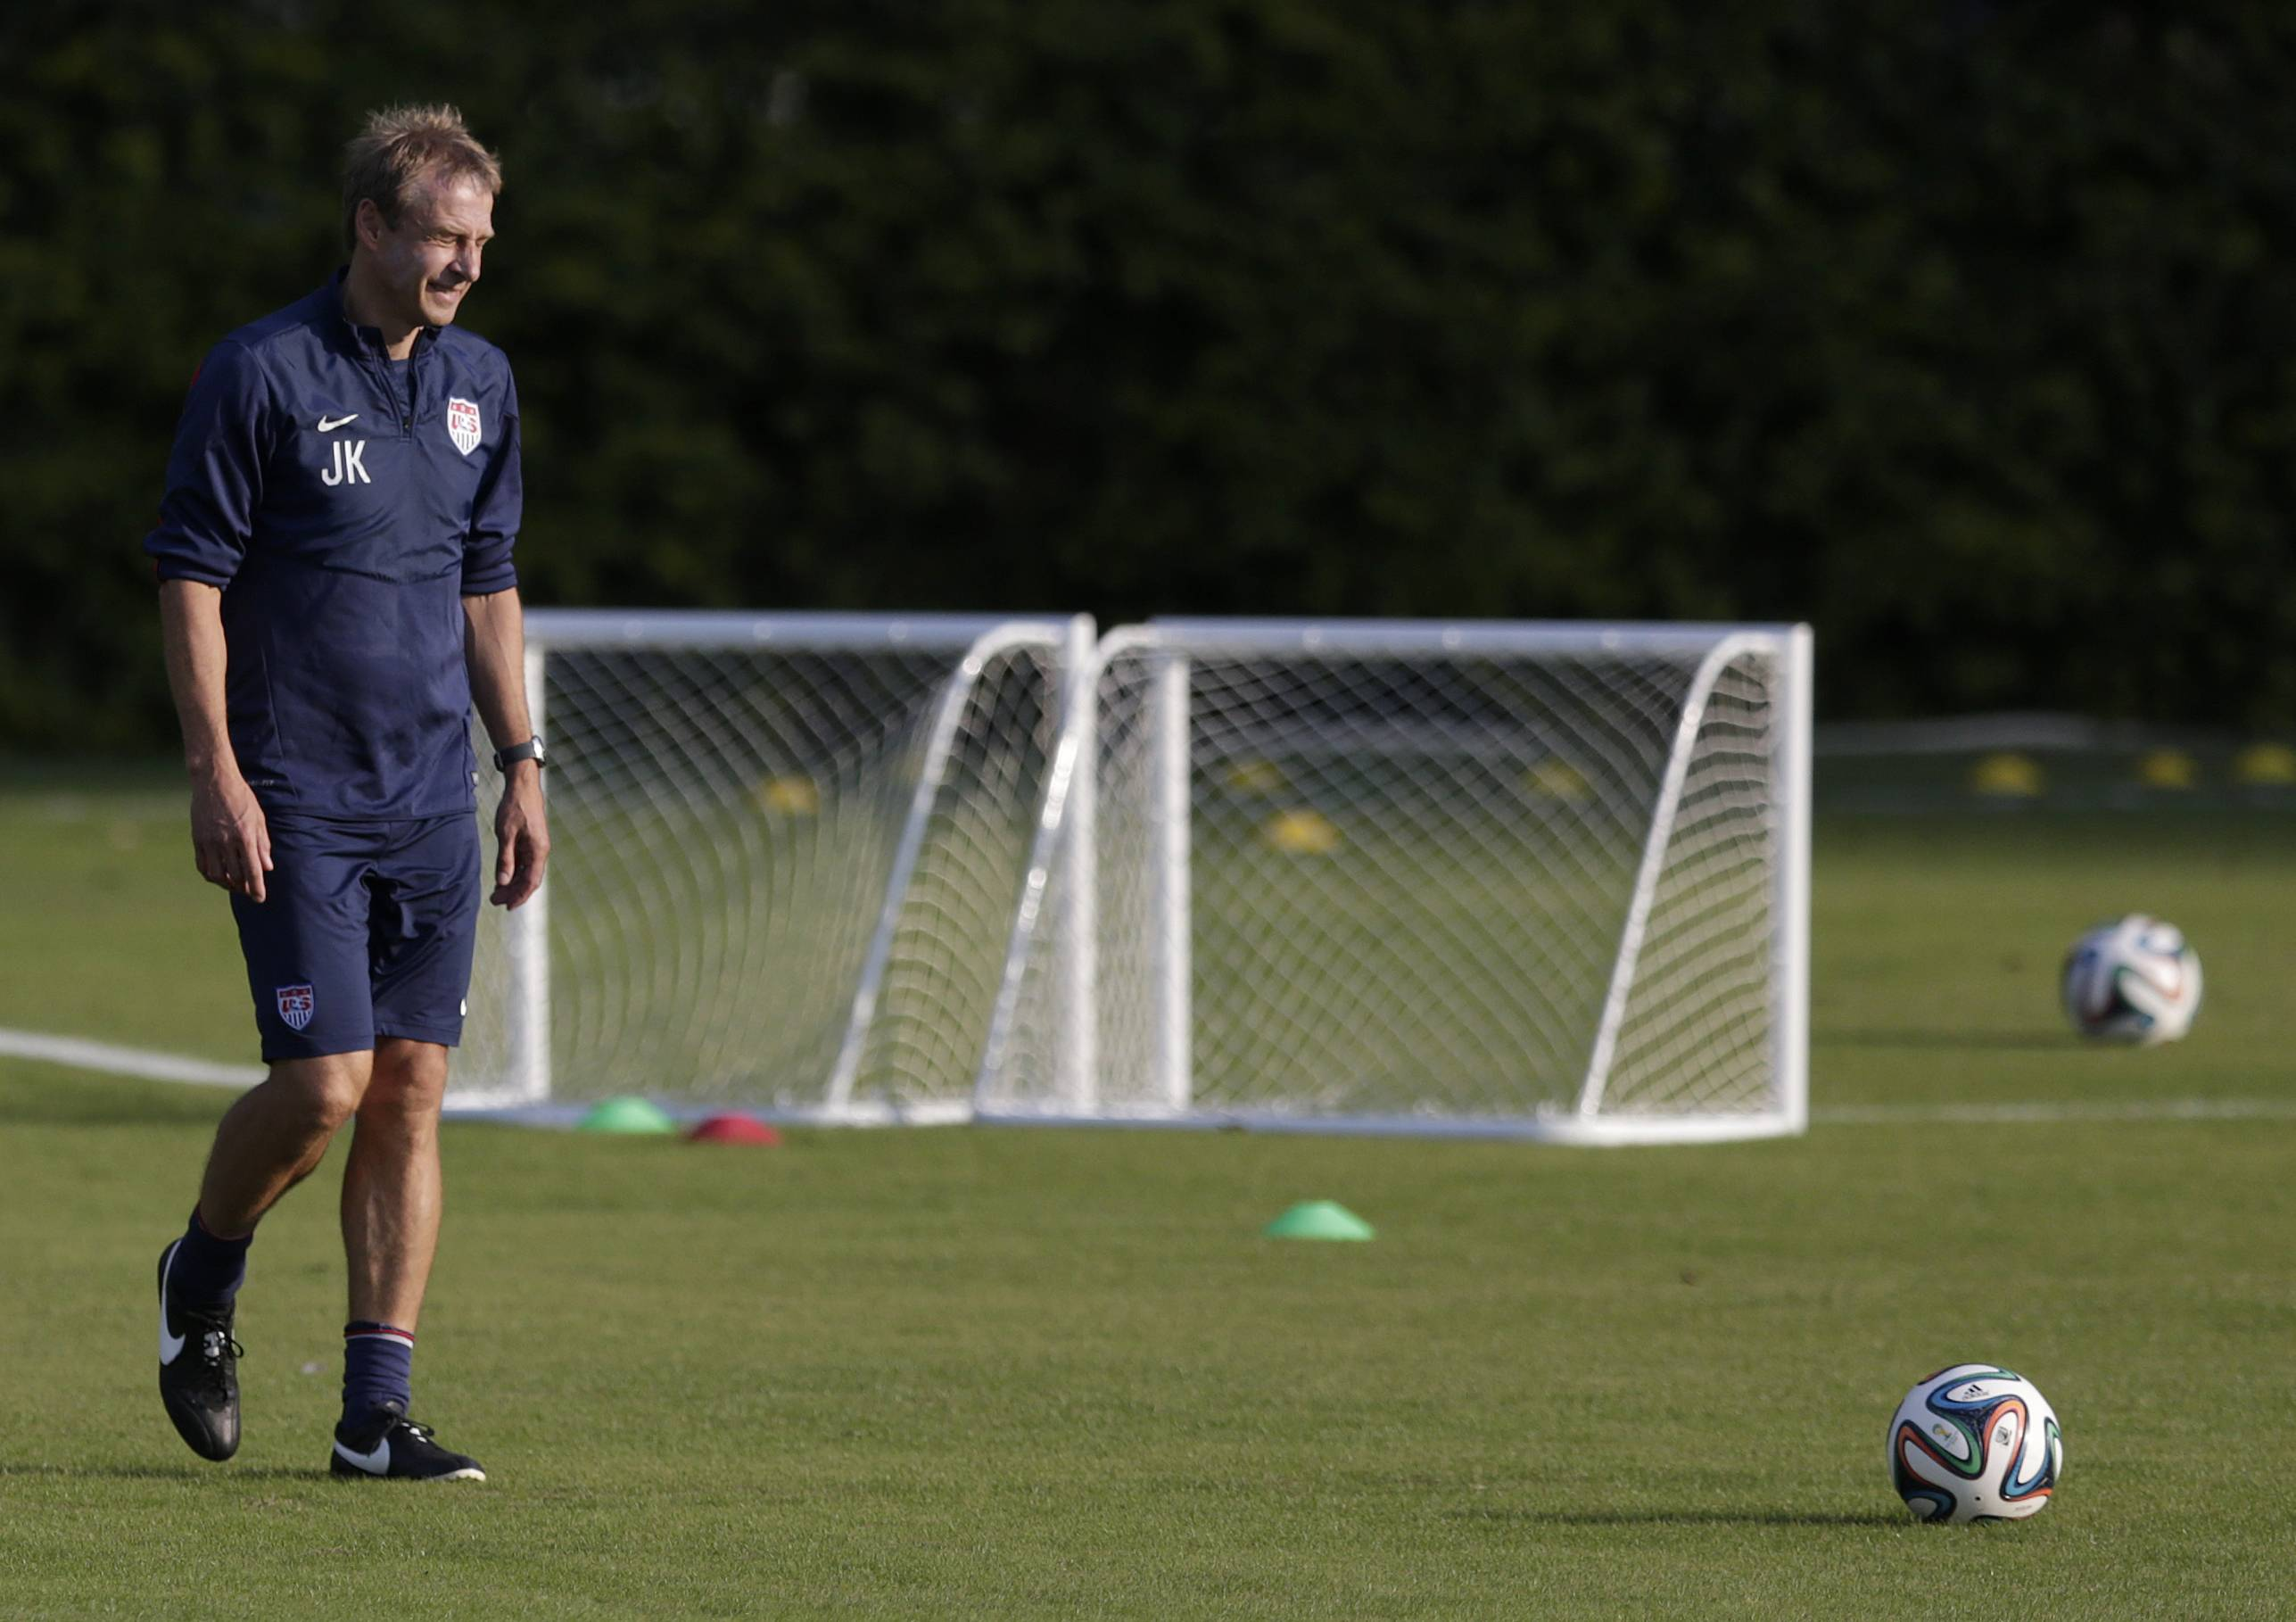 United States' head coach Jurgen Klinsmann walks a practice field during a training session in Sao Paulo, Brazil, Monday, June 23, 2014. The United States will play Germany in group G of the 2014 soccer World Cup on June 26 in Recife, Brazil.